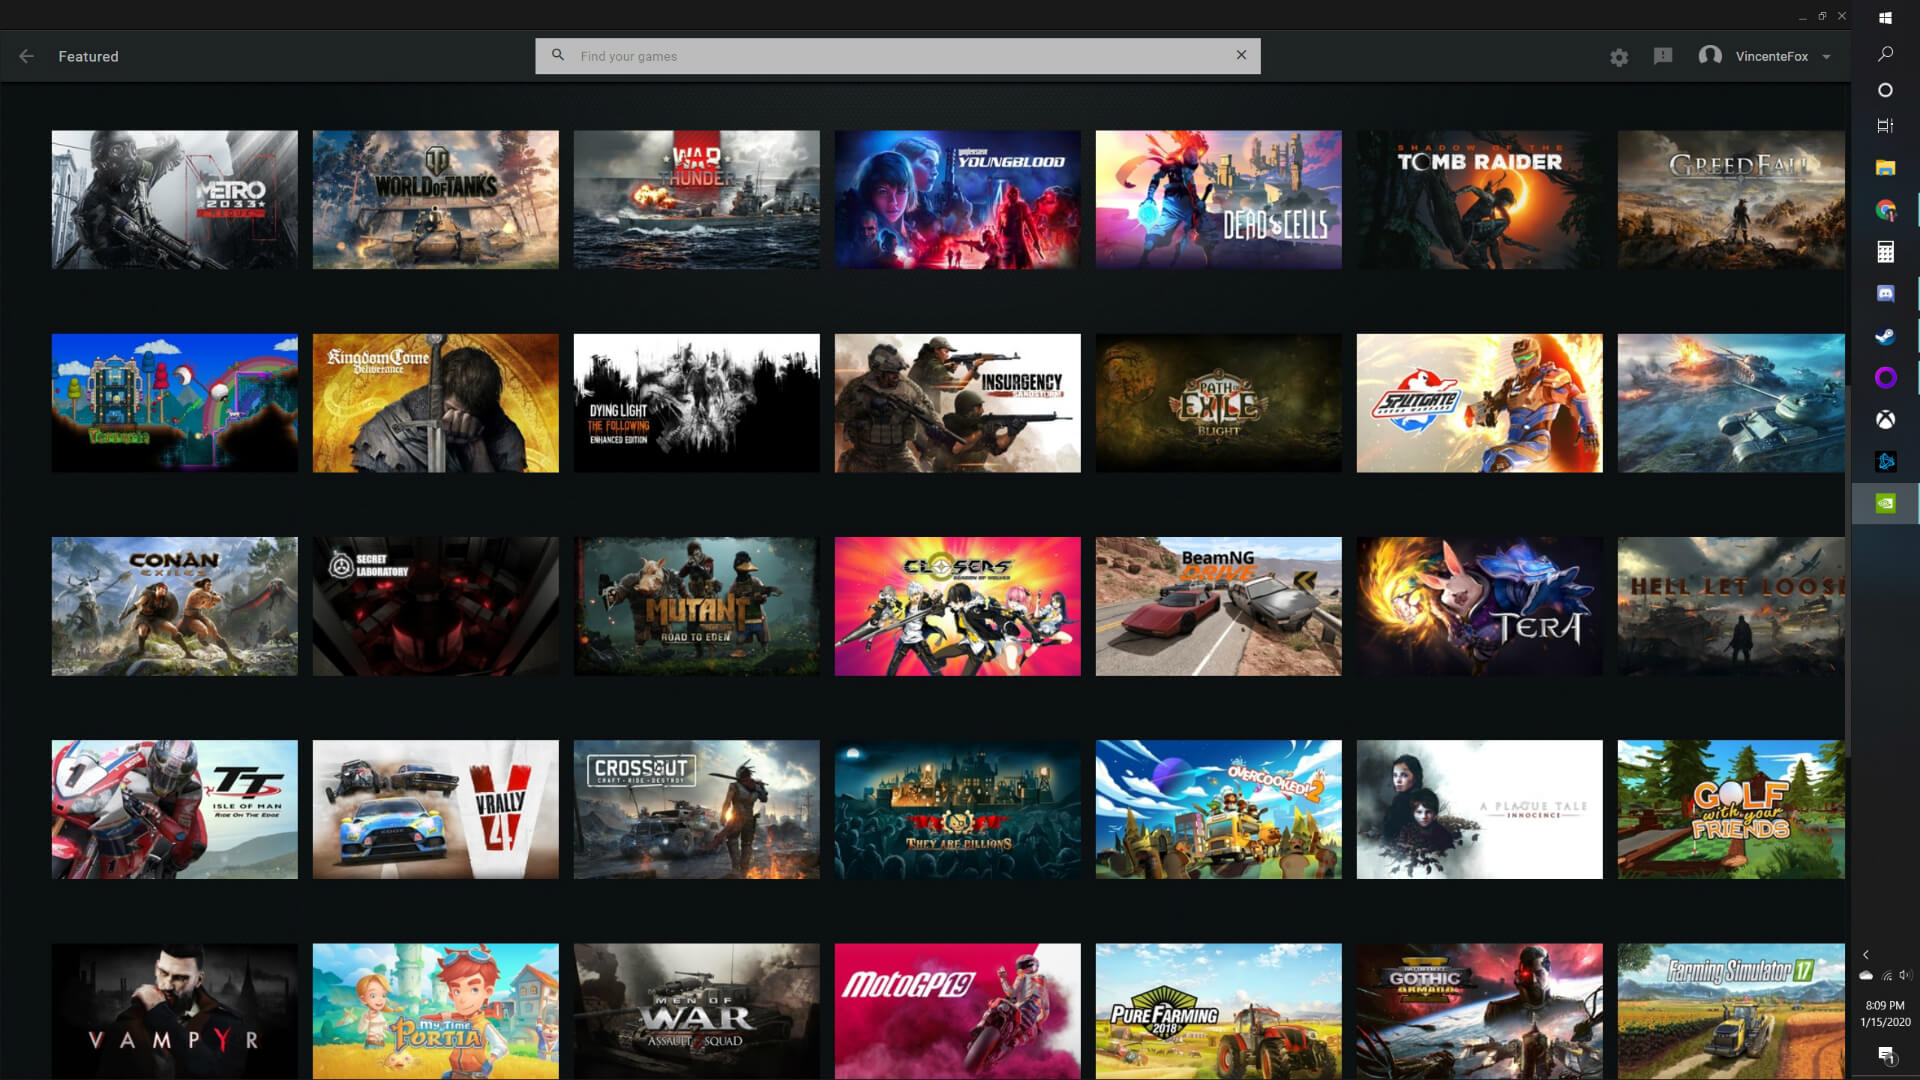 GeForce Now Impressions: Nvidia's Service Works...But Is It What You Want?